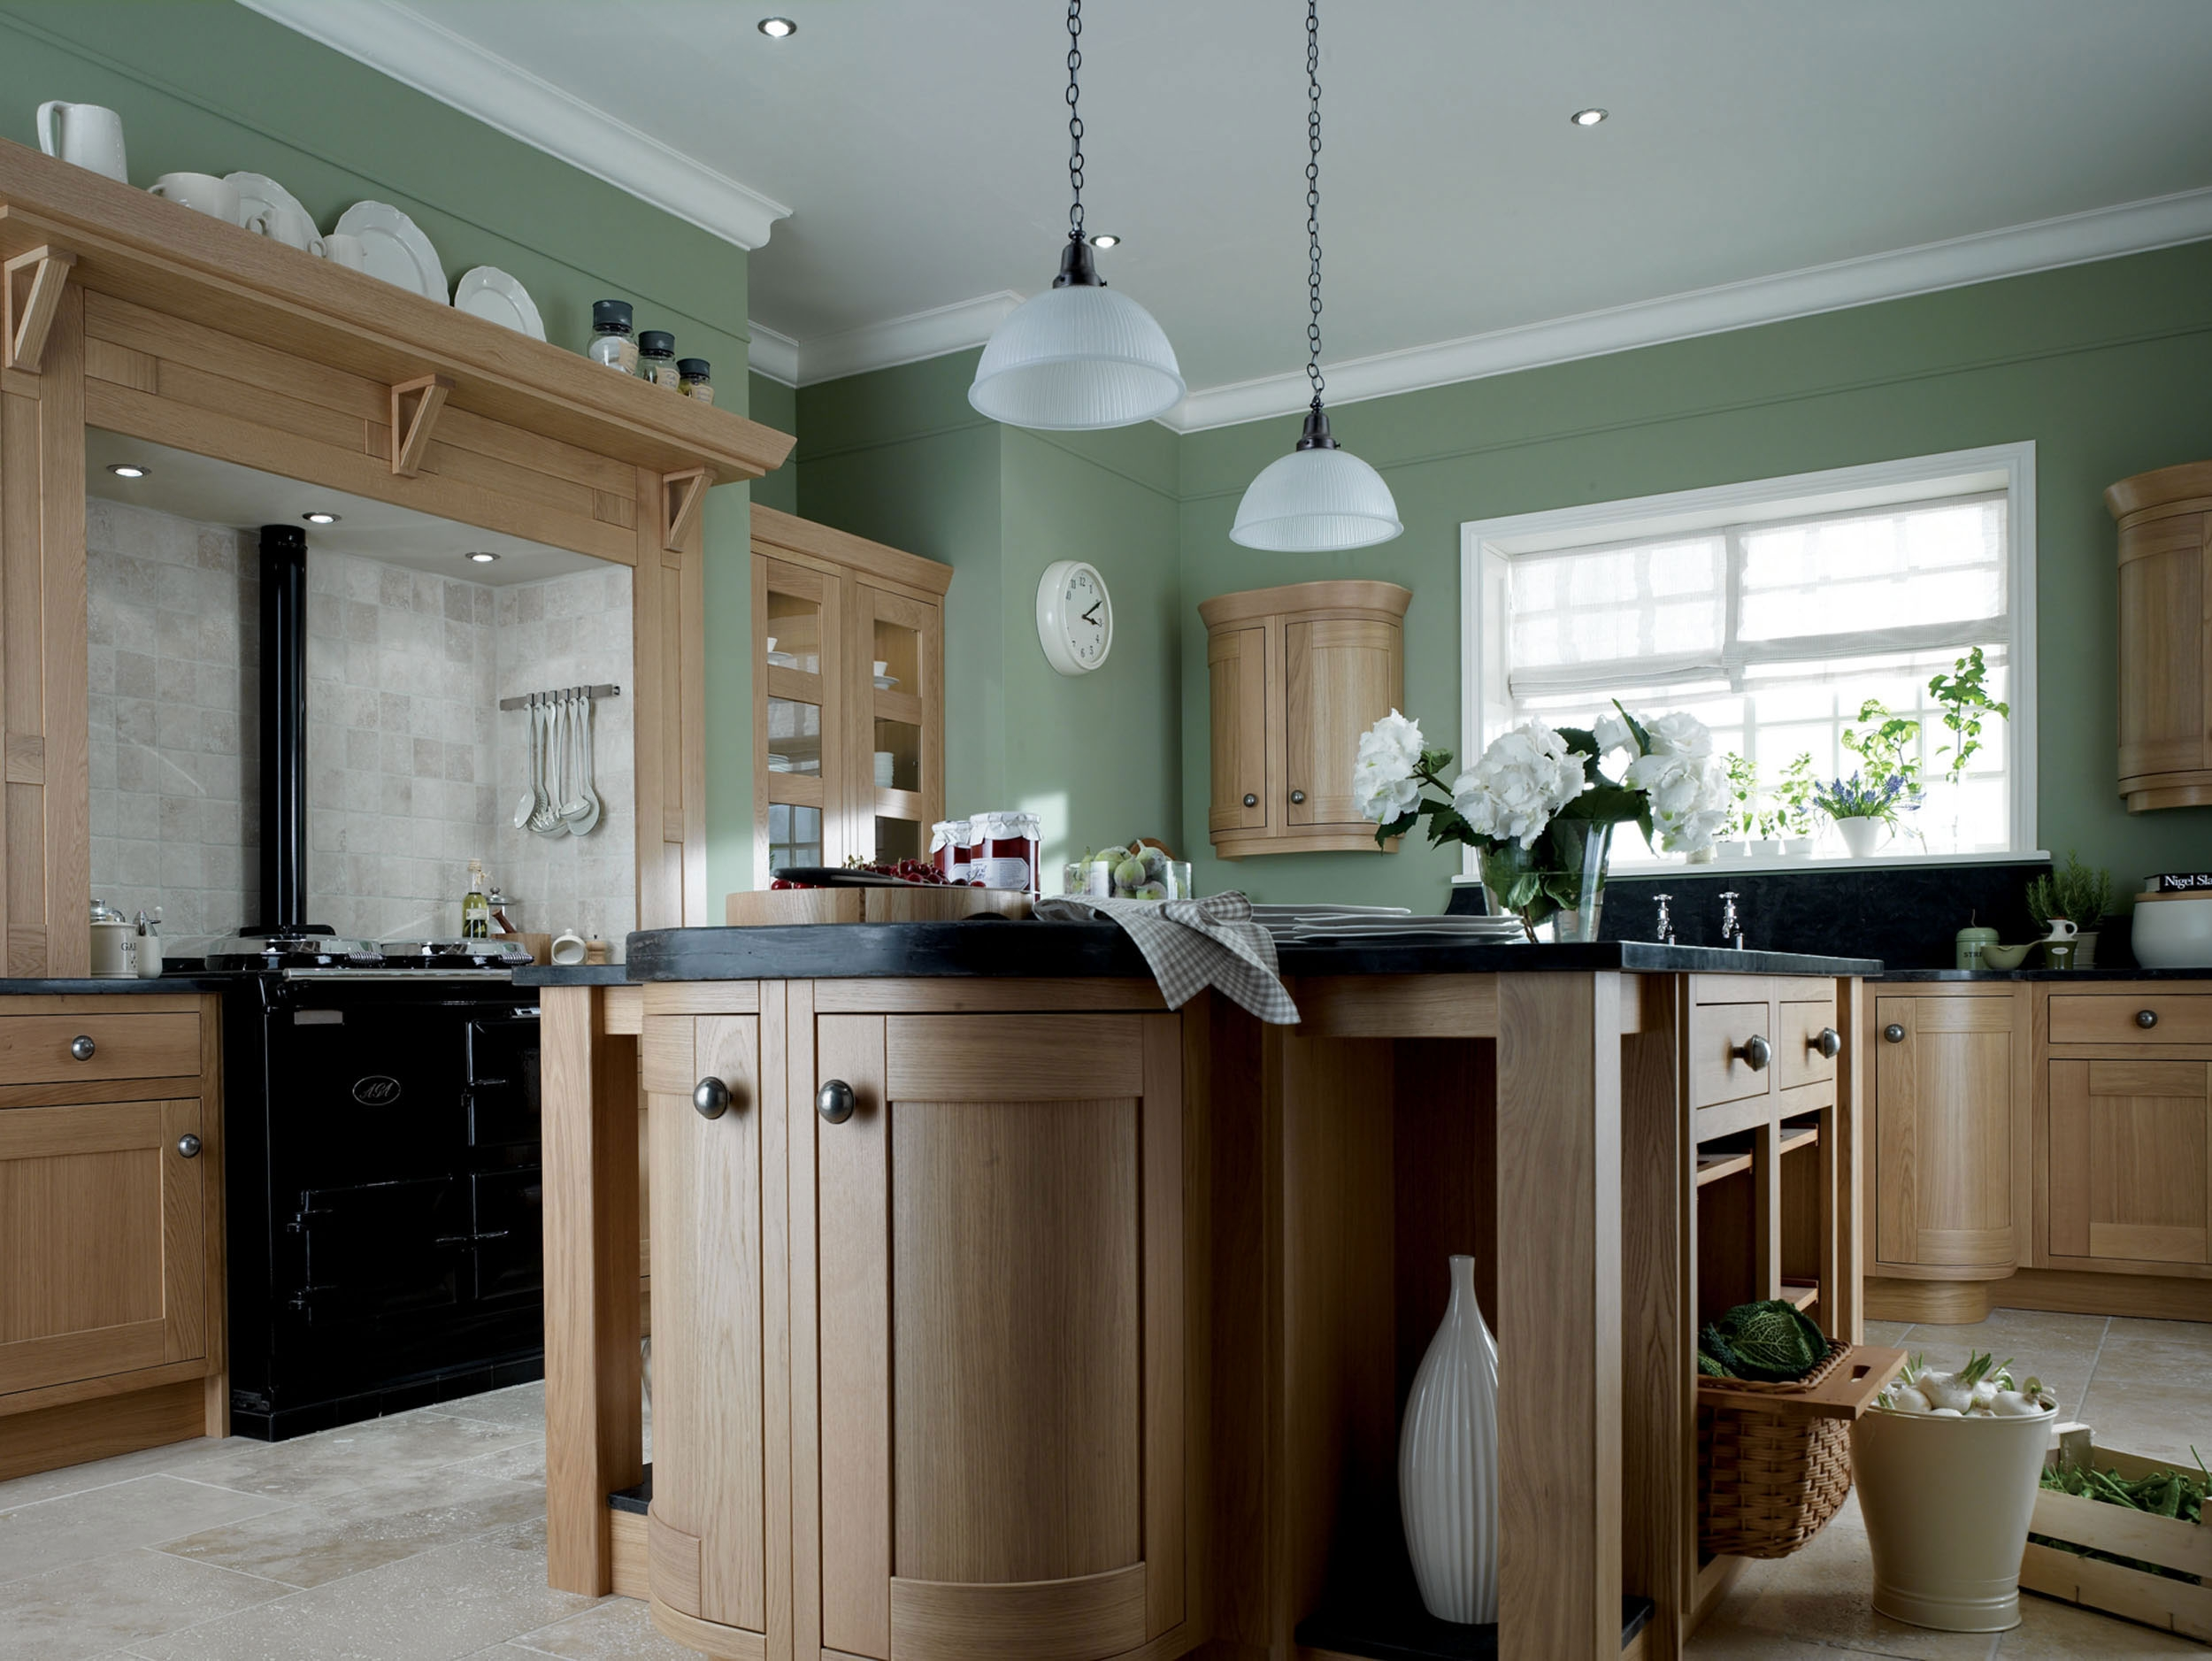 Kitchen Cabinet Colors With Green Wallsimpressive nice design kitchen wall color maple cabinet with